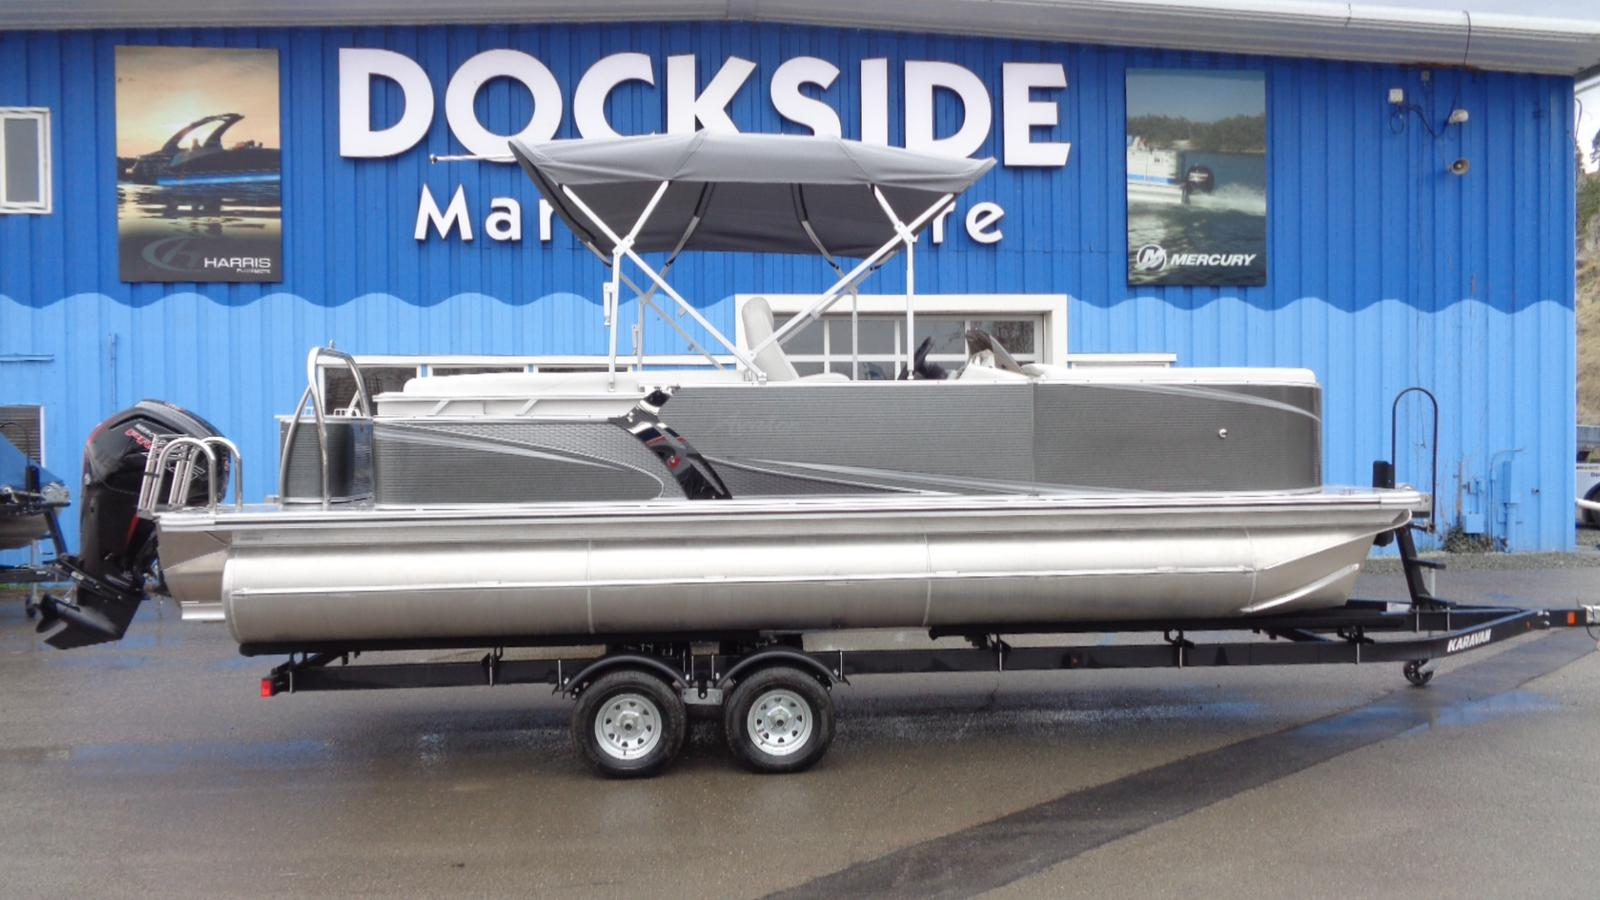 For Sale: 2018 Avalon 24 Lsz Quad Lounger 24ft<br/>Dockside Marine Centre, LTD.